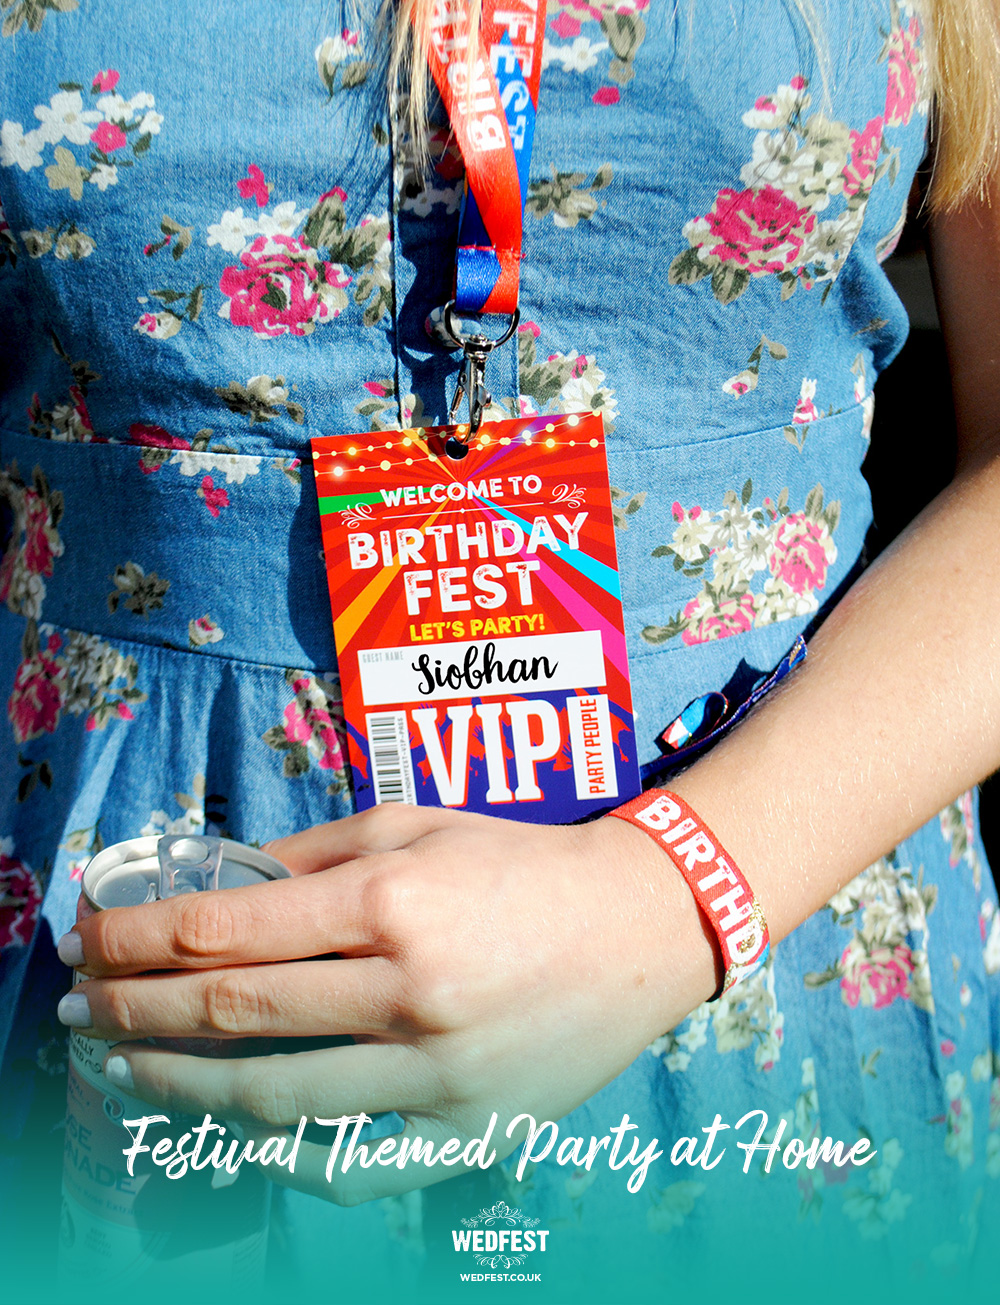 birthdayfest festival birthday party at home vip pass lanyards wristbands